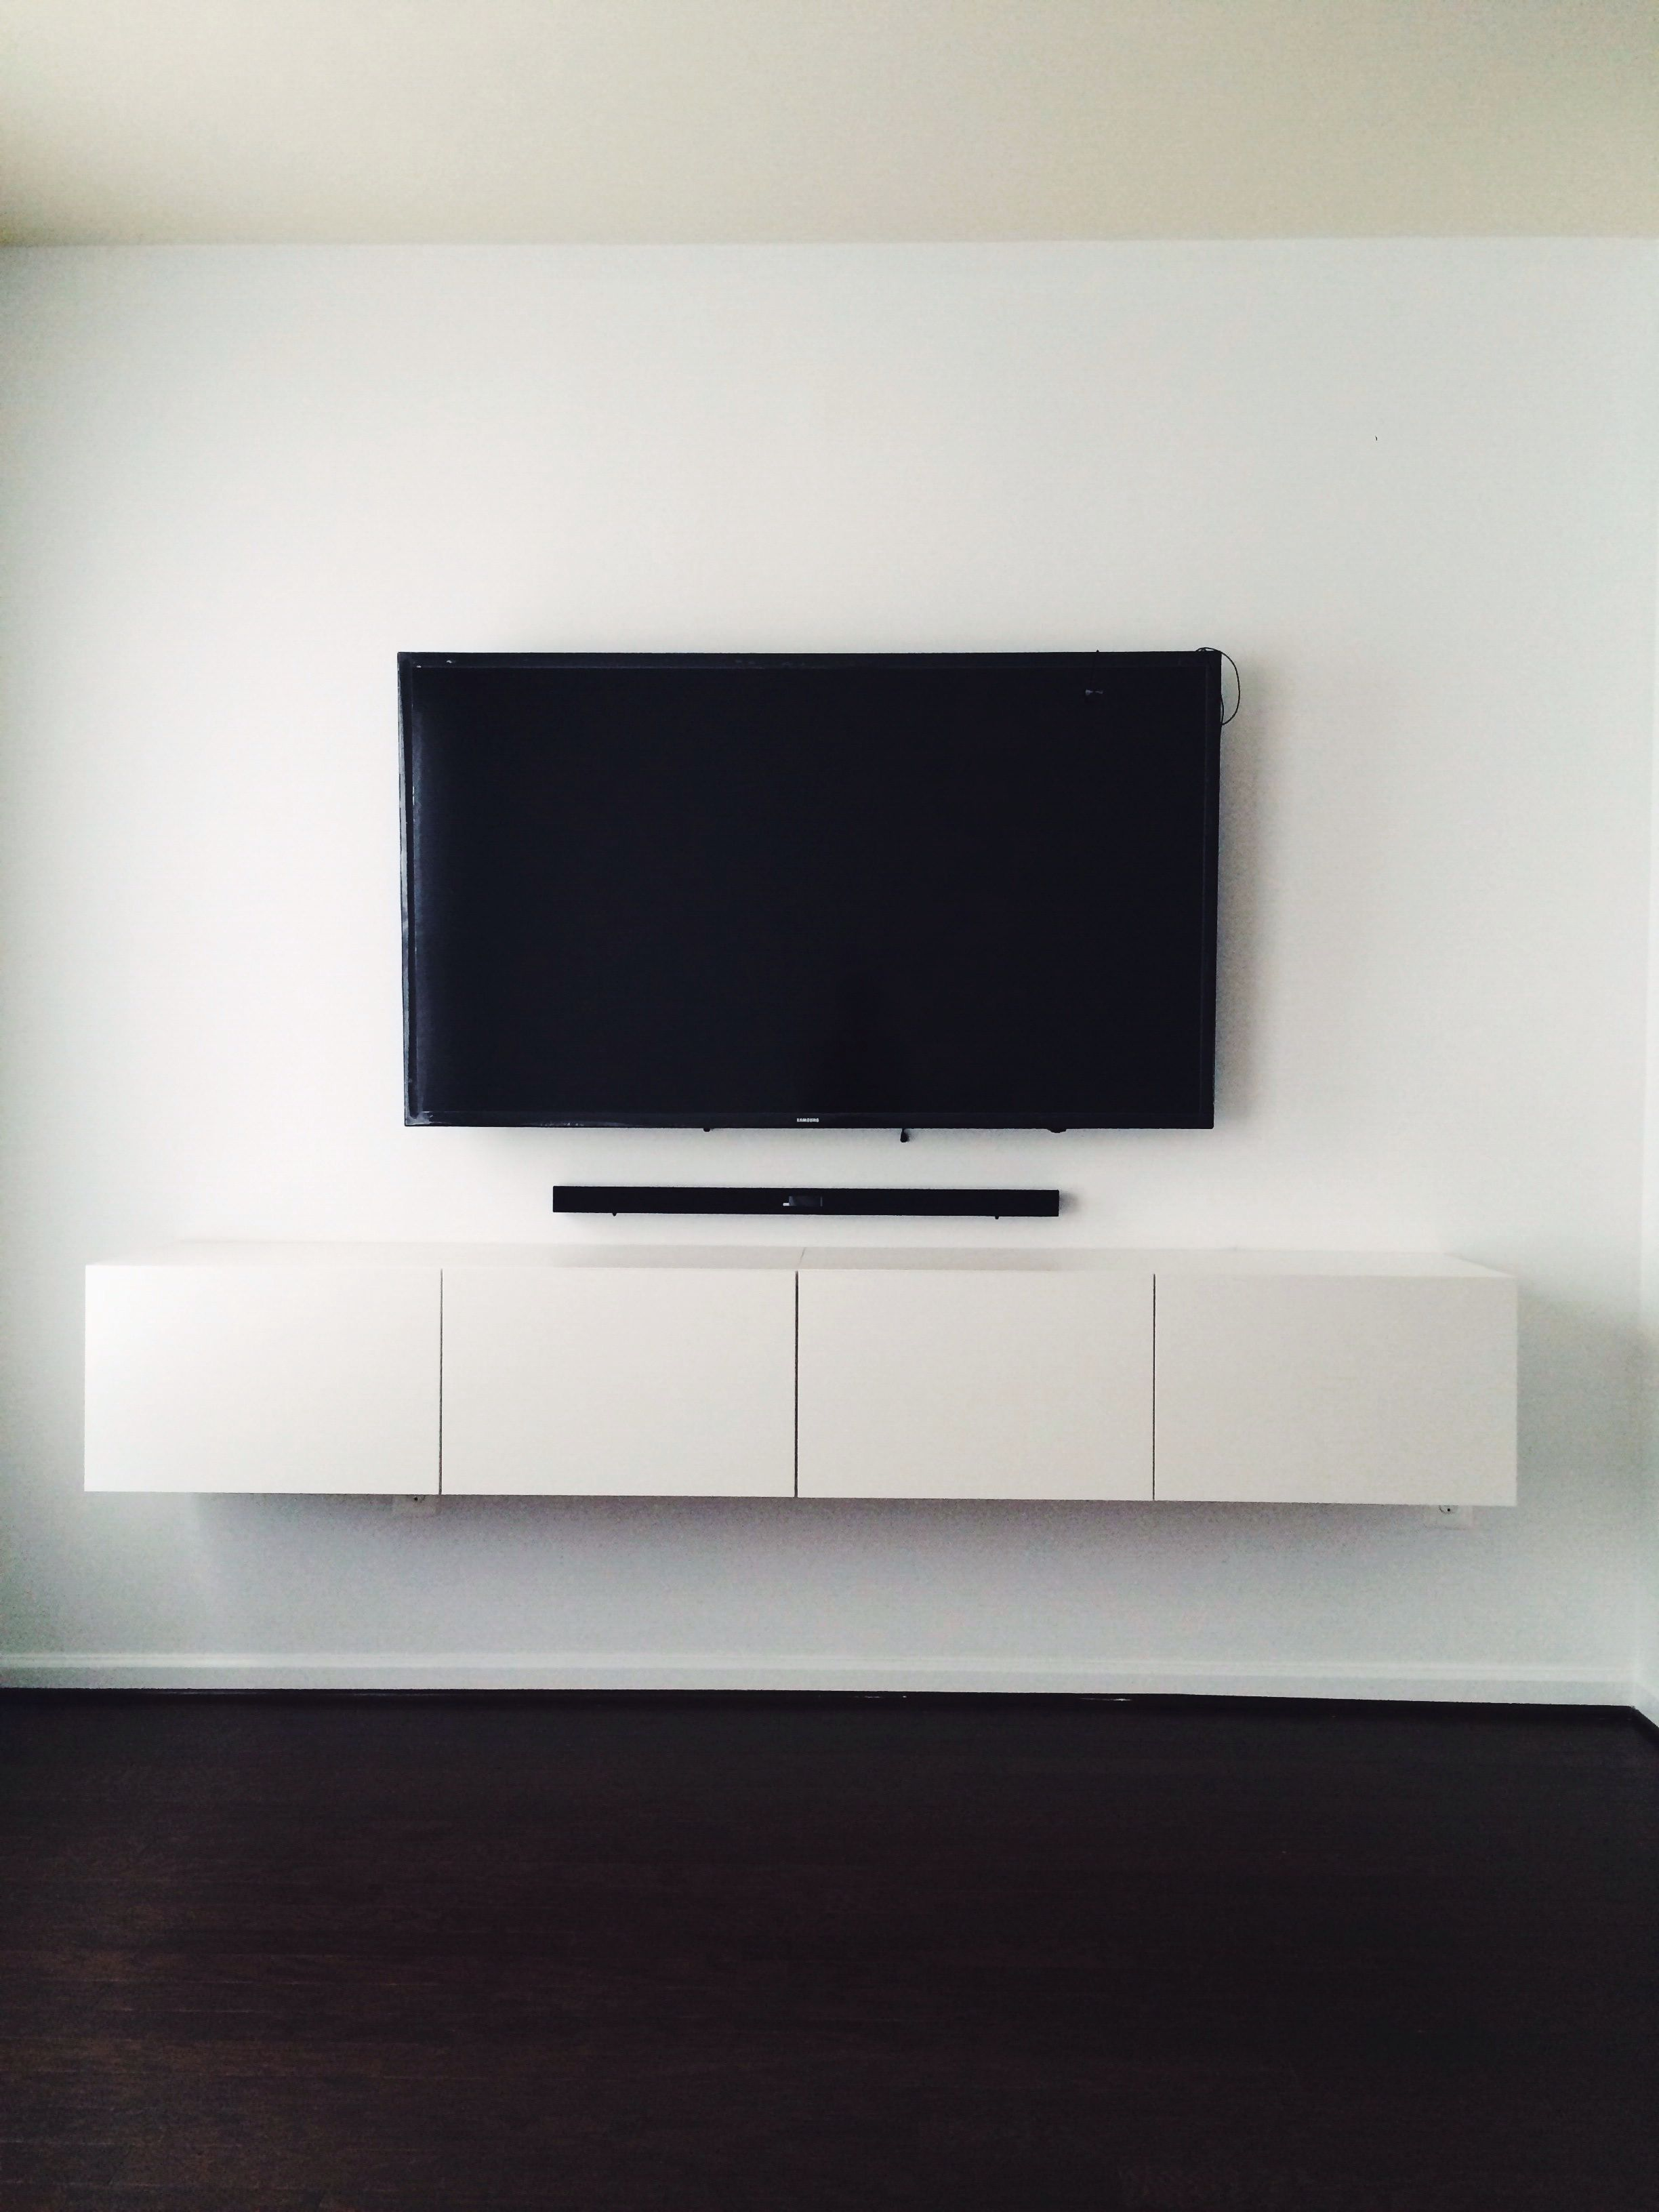 IKEA BEST Media Console Mounted Tv With Hidden Wires Now Thats Clean Modern Living In